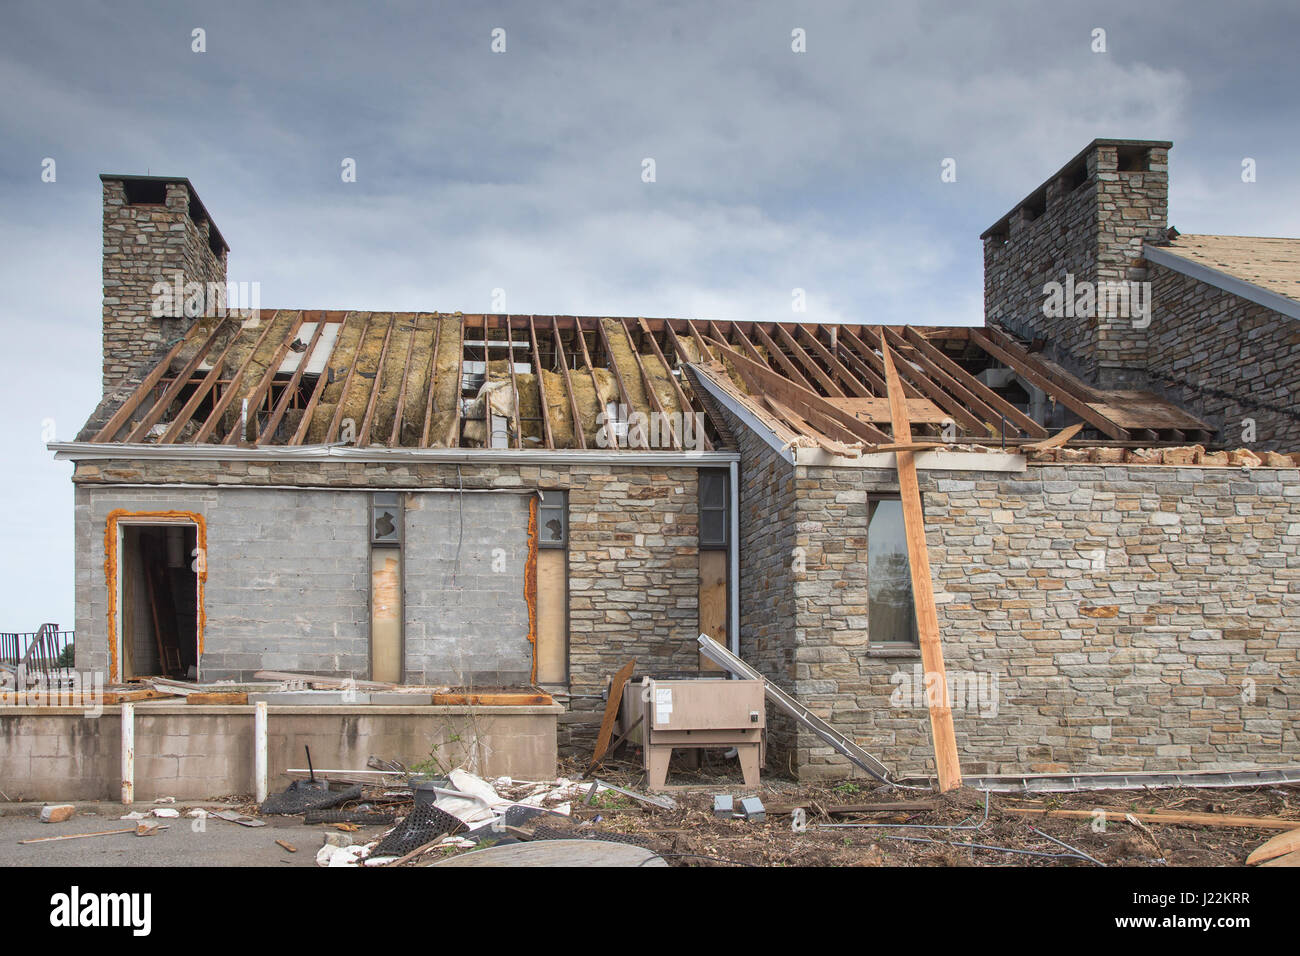 House being demolished in Ramsey, New Jersey - Stock Image